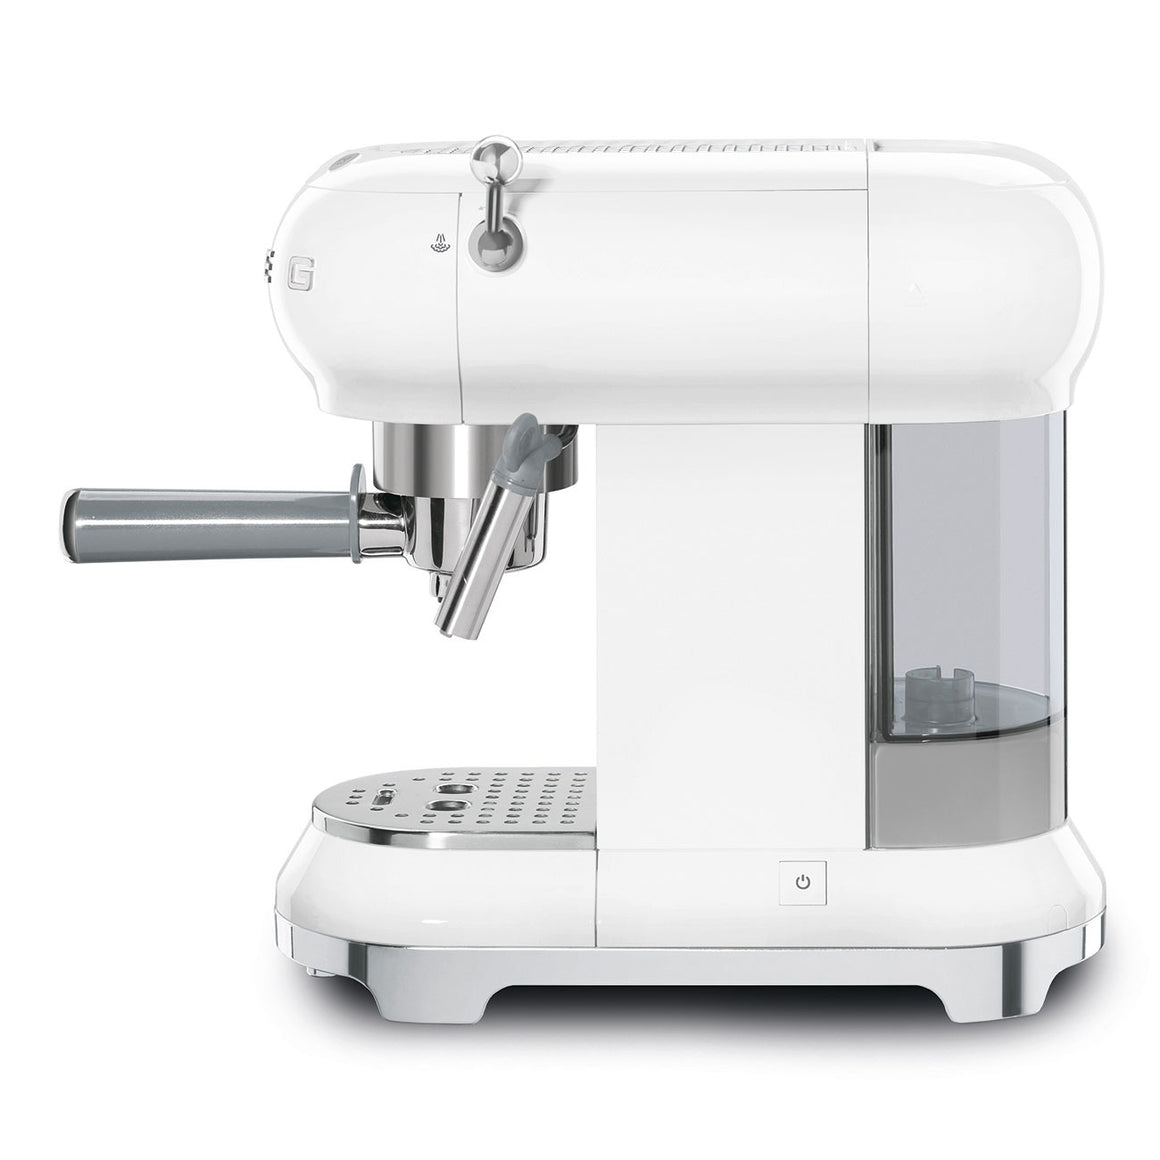 SMEG - 50's Espresso Coffee Machine, White